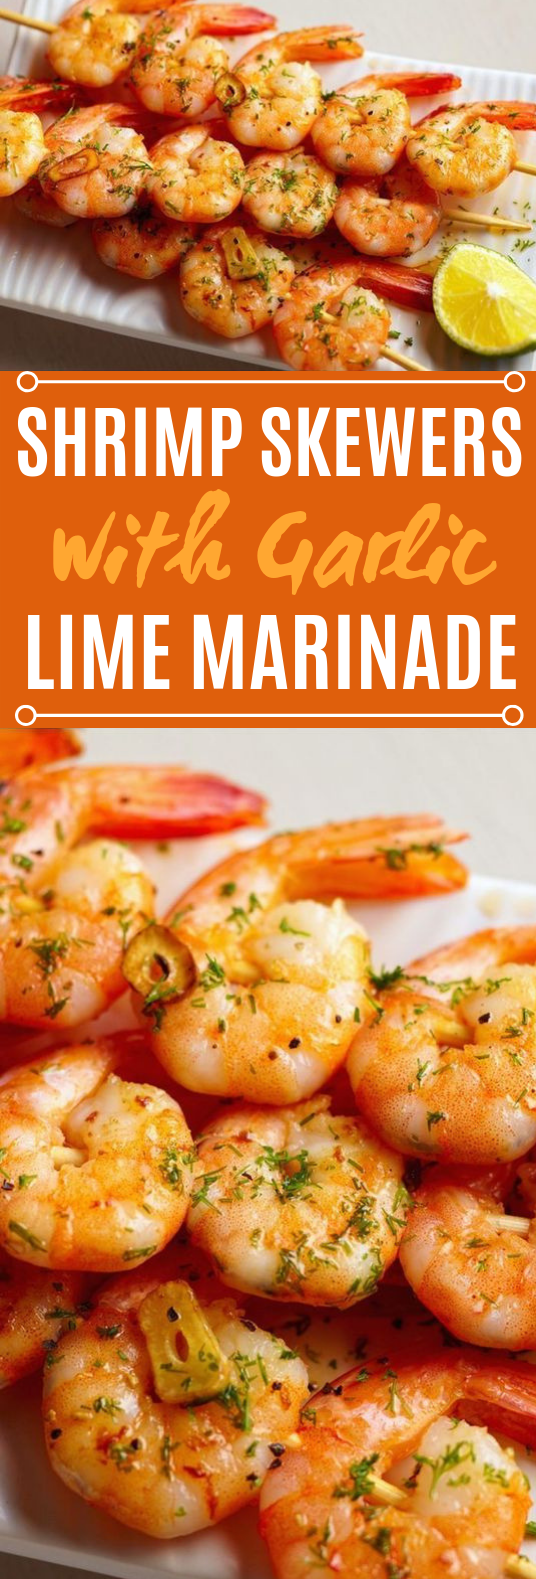 Shrimp Skewers with Garlic-Lime Marinade #shrimp #grilling